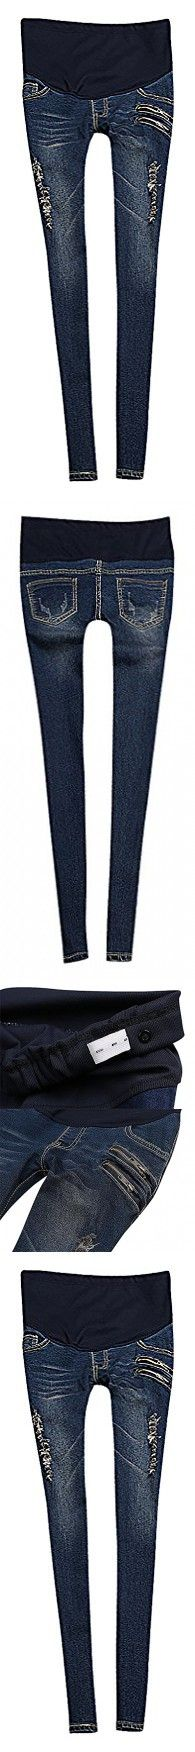 US&R, Women's Dark Distressed Zip Detail Secret Fit Belly Maternity Skinny Jeans, Blue 10 ,Manufacturer(XXL)